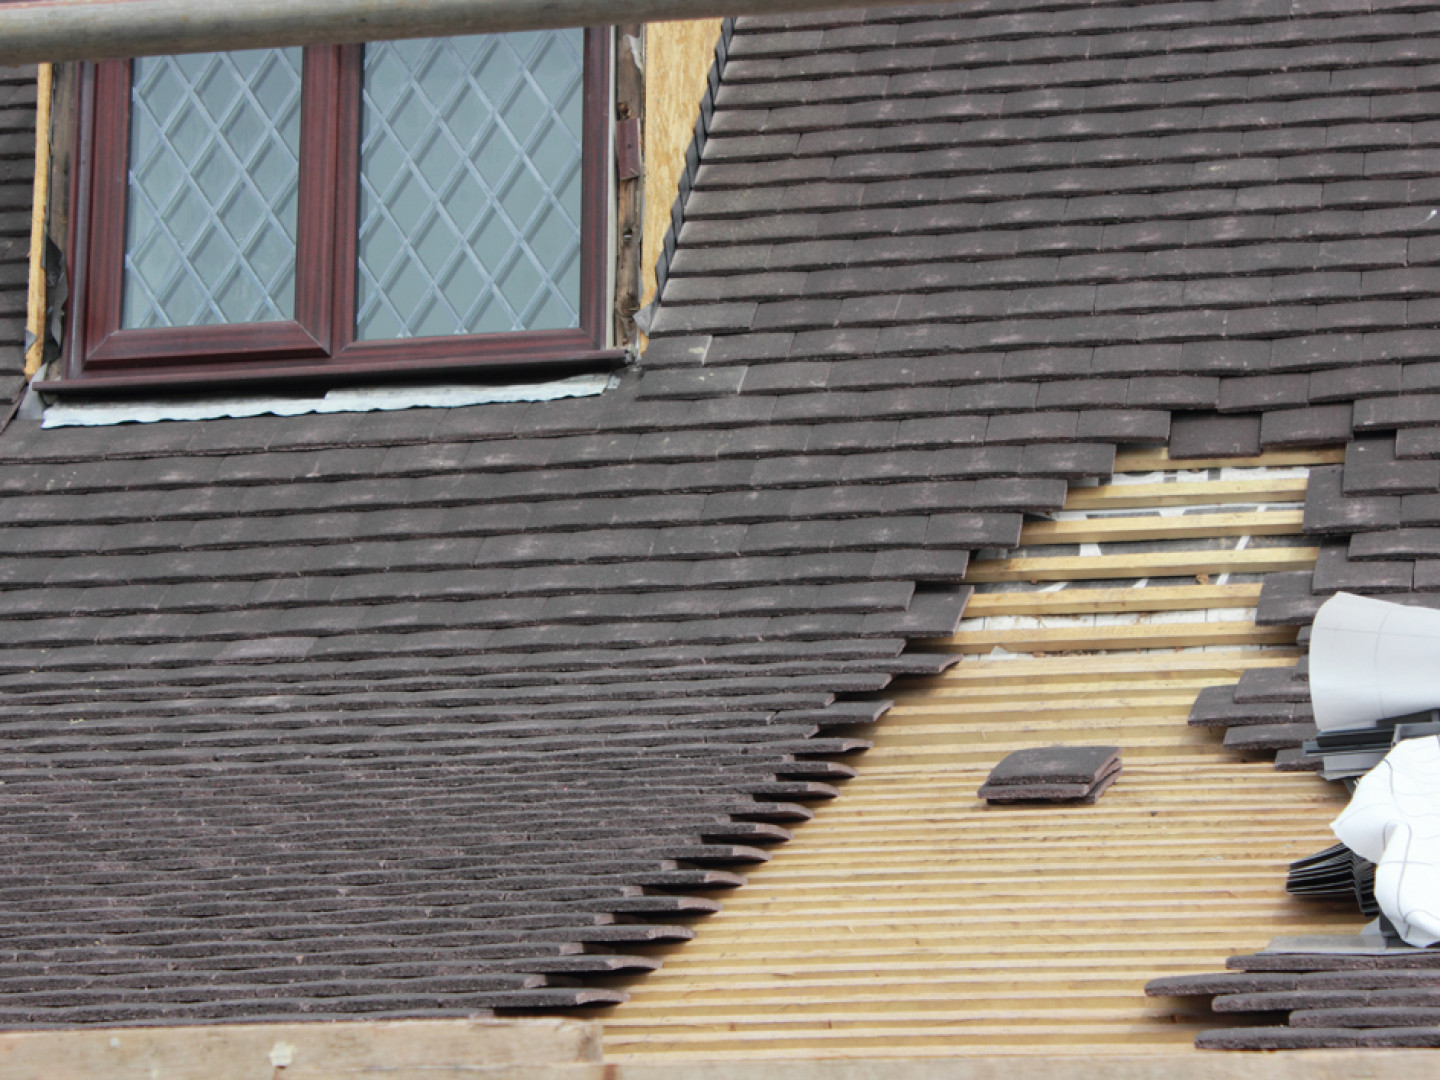 Don't wait to get the roof replacement you need